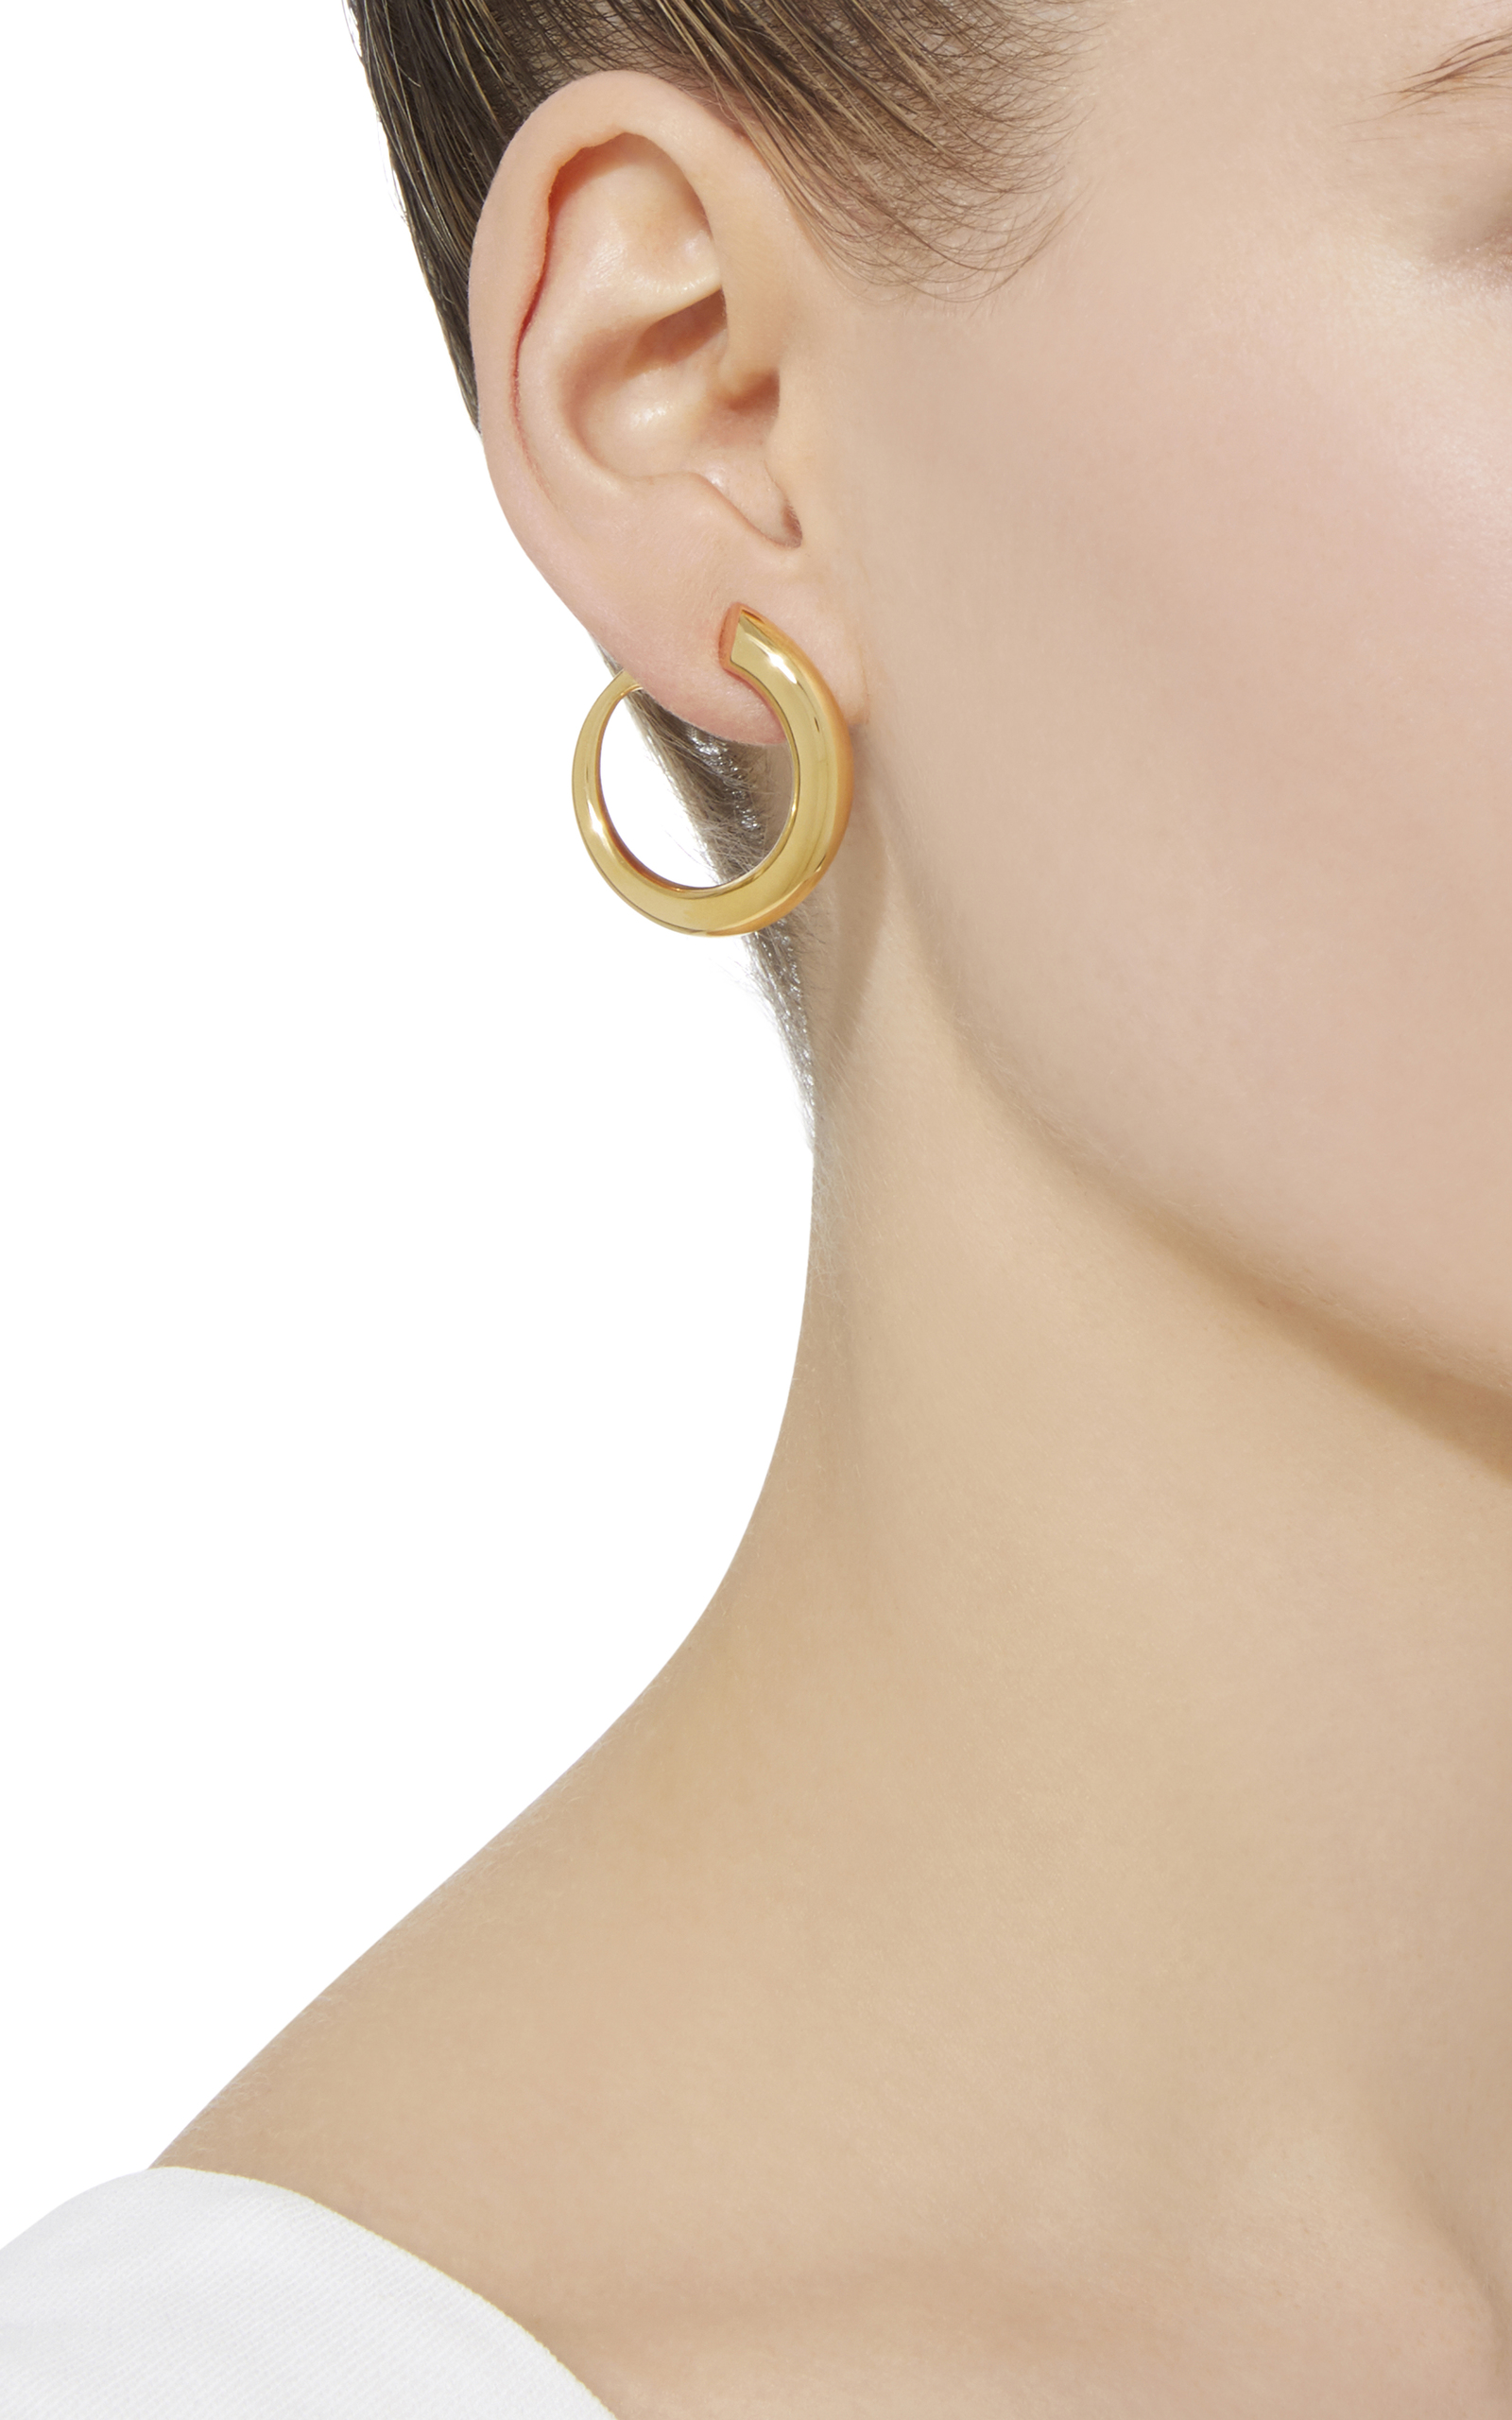 jewelry charlottechesnais berlin articles the chesnais charlotte main saturn earrings corner jewellery saturnearrings